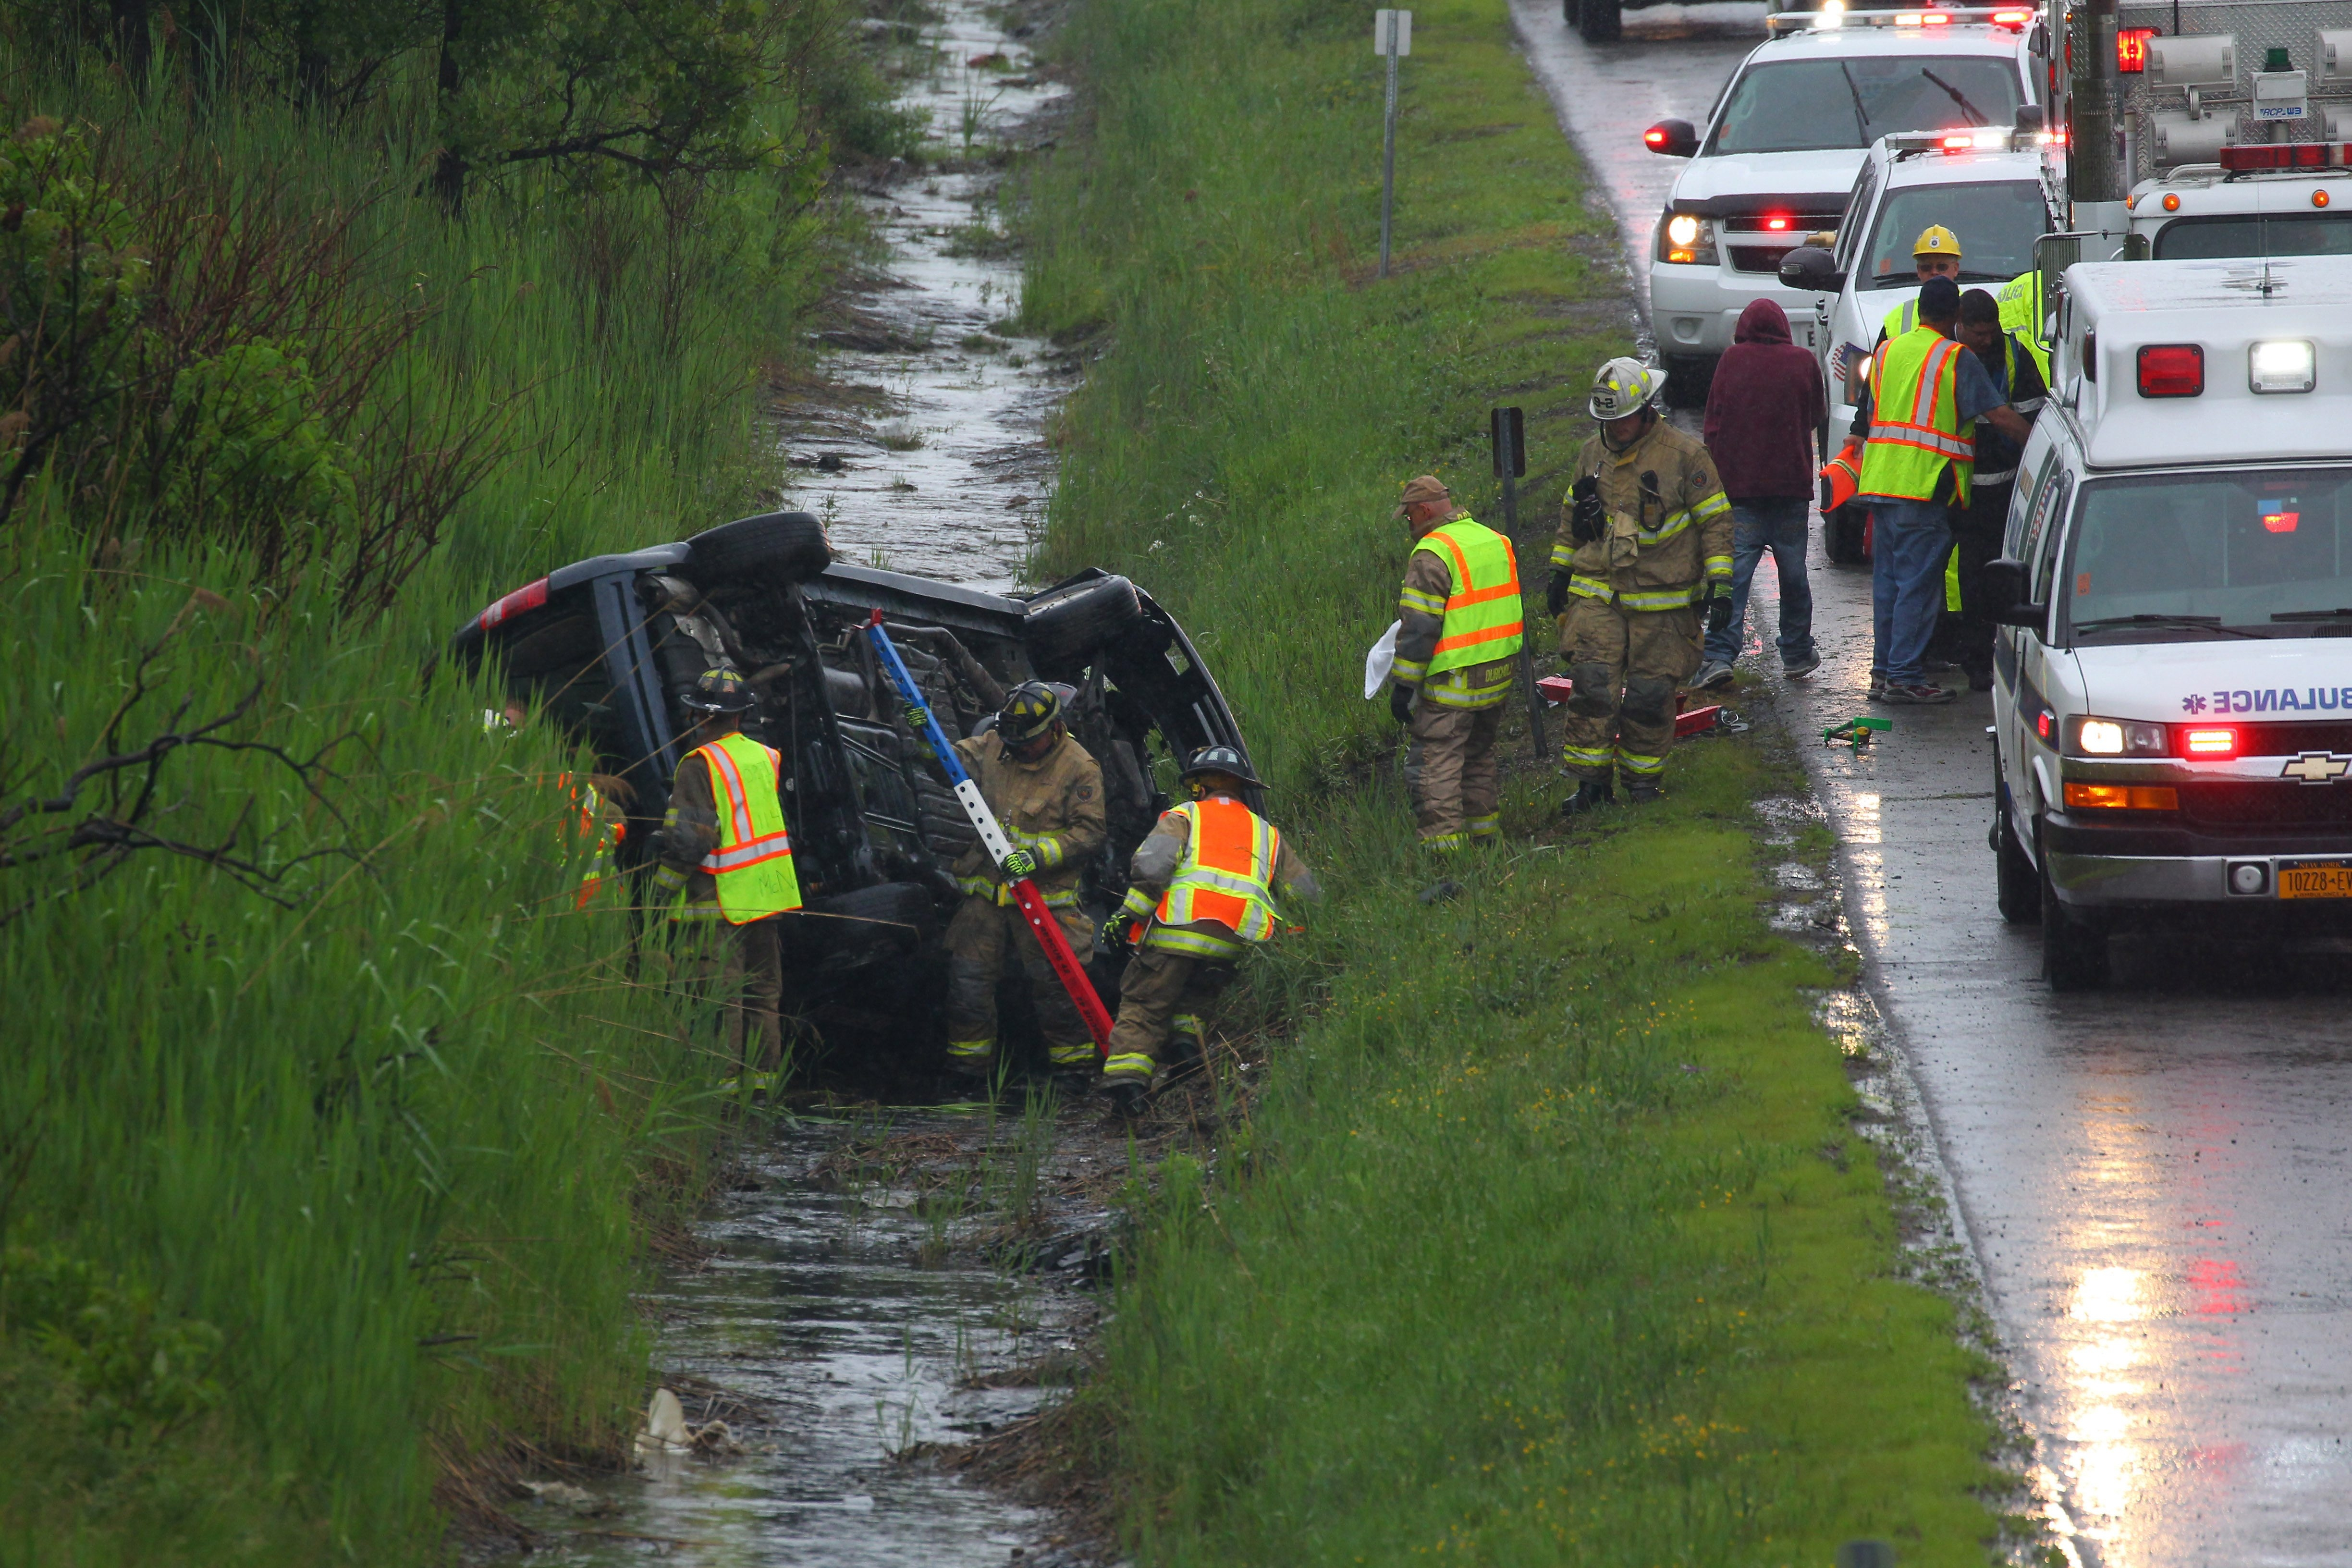 First responders work on the scene of a roll-over accident on Rte 219 in Orchard Park Tuesday, June 9, 2015.    (Mark Mulville/Buffalo News)